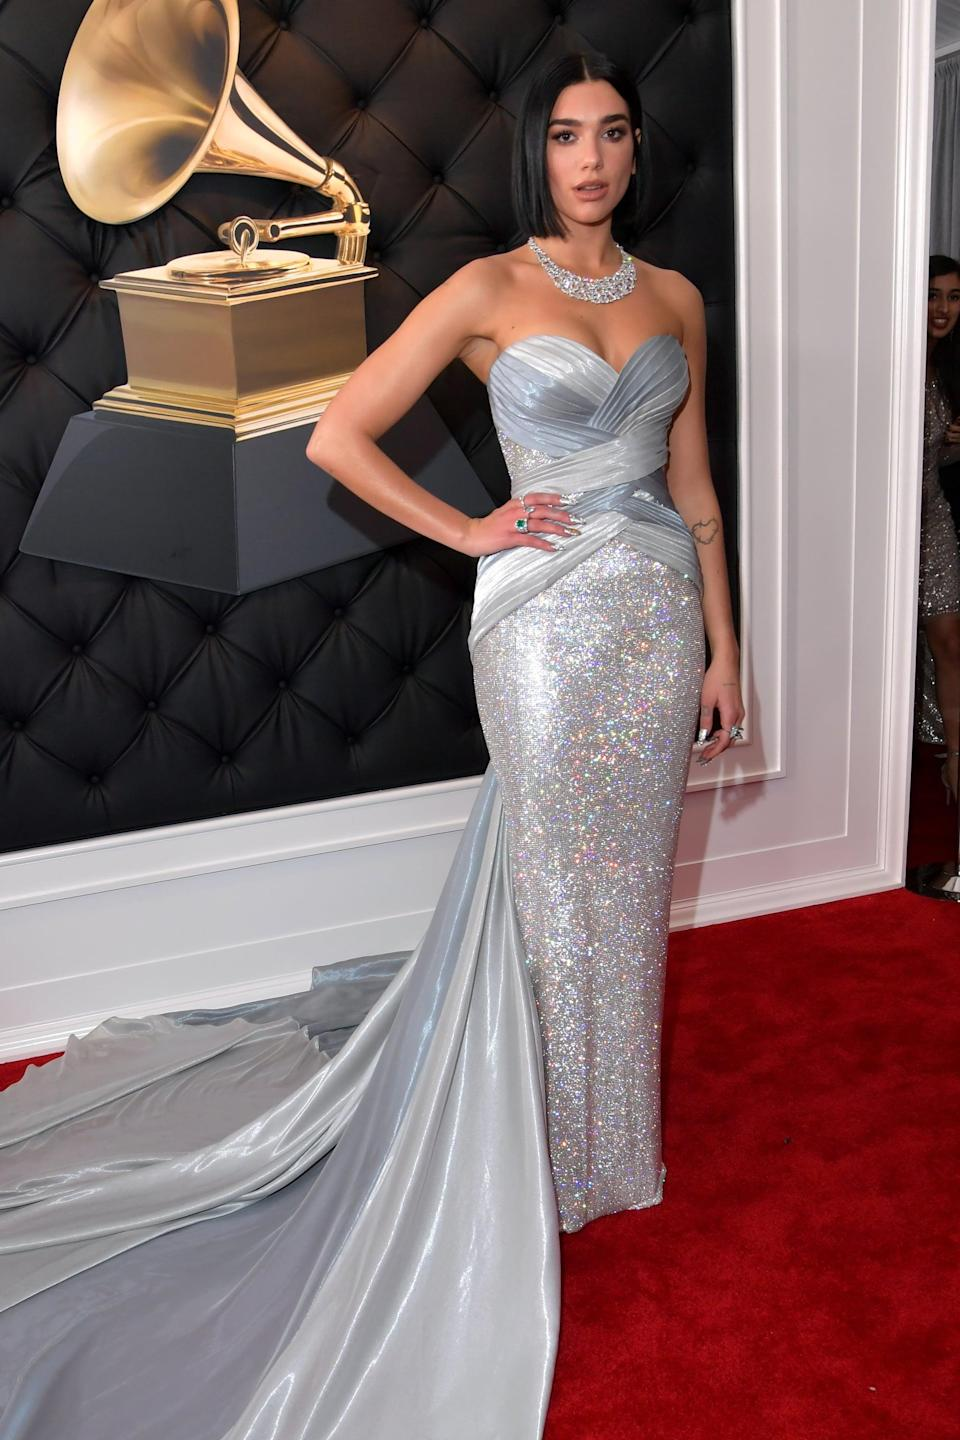 """<p><a rel=""""nofollow noopener"""" href=""""https://www.popsugar.com/fashion/Dua-Lipa-Dress-Grammy-Awards-2019-45773017"""" target=""""_blank"""" data-ylk=""""slk:Wearing a floor-sweeping silver strapless gown"""" class=""""link rapid-noclick-resp"""">Wearing a floor-sweeping silver strapless gown</a> with jewels from Bulgari and Ashley Zhang.</p>"""